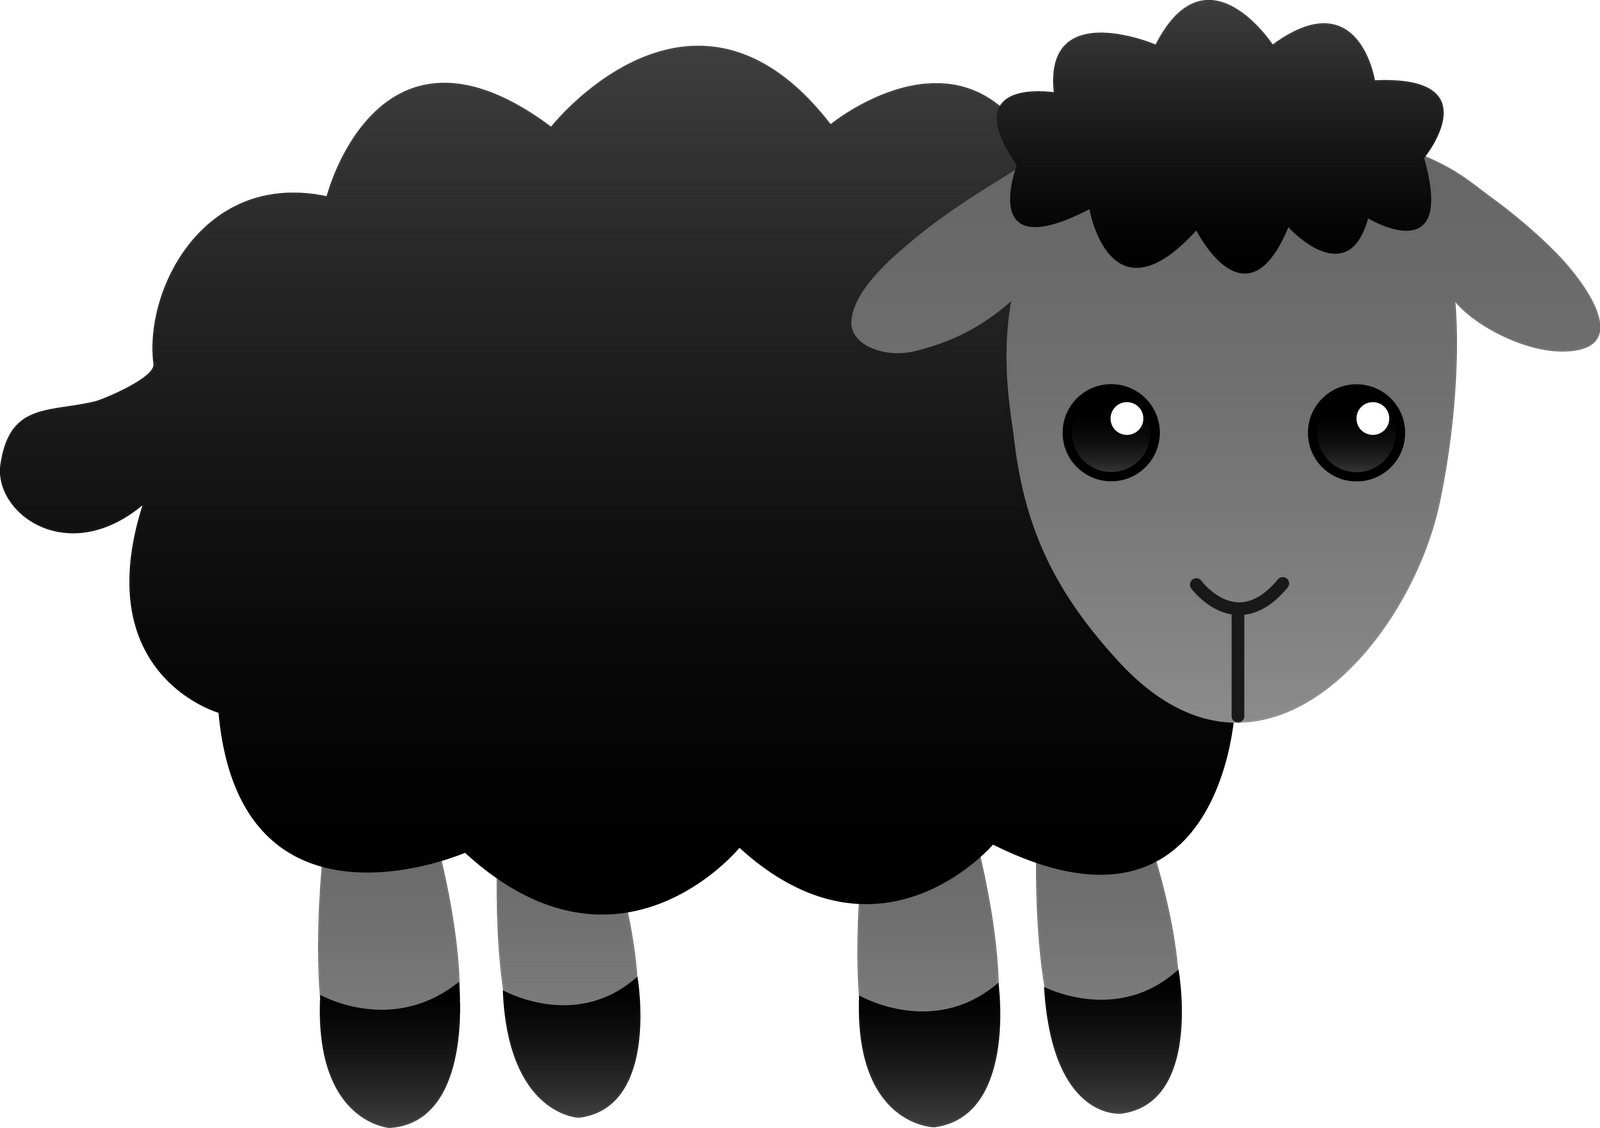 Turkey as a sheep clipart vector royalty free download Moving Sheep Clipart (24+) vector royalty free download